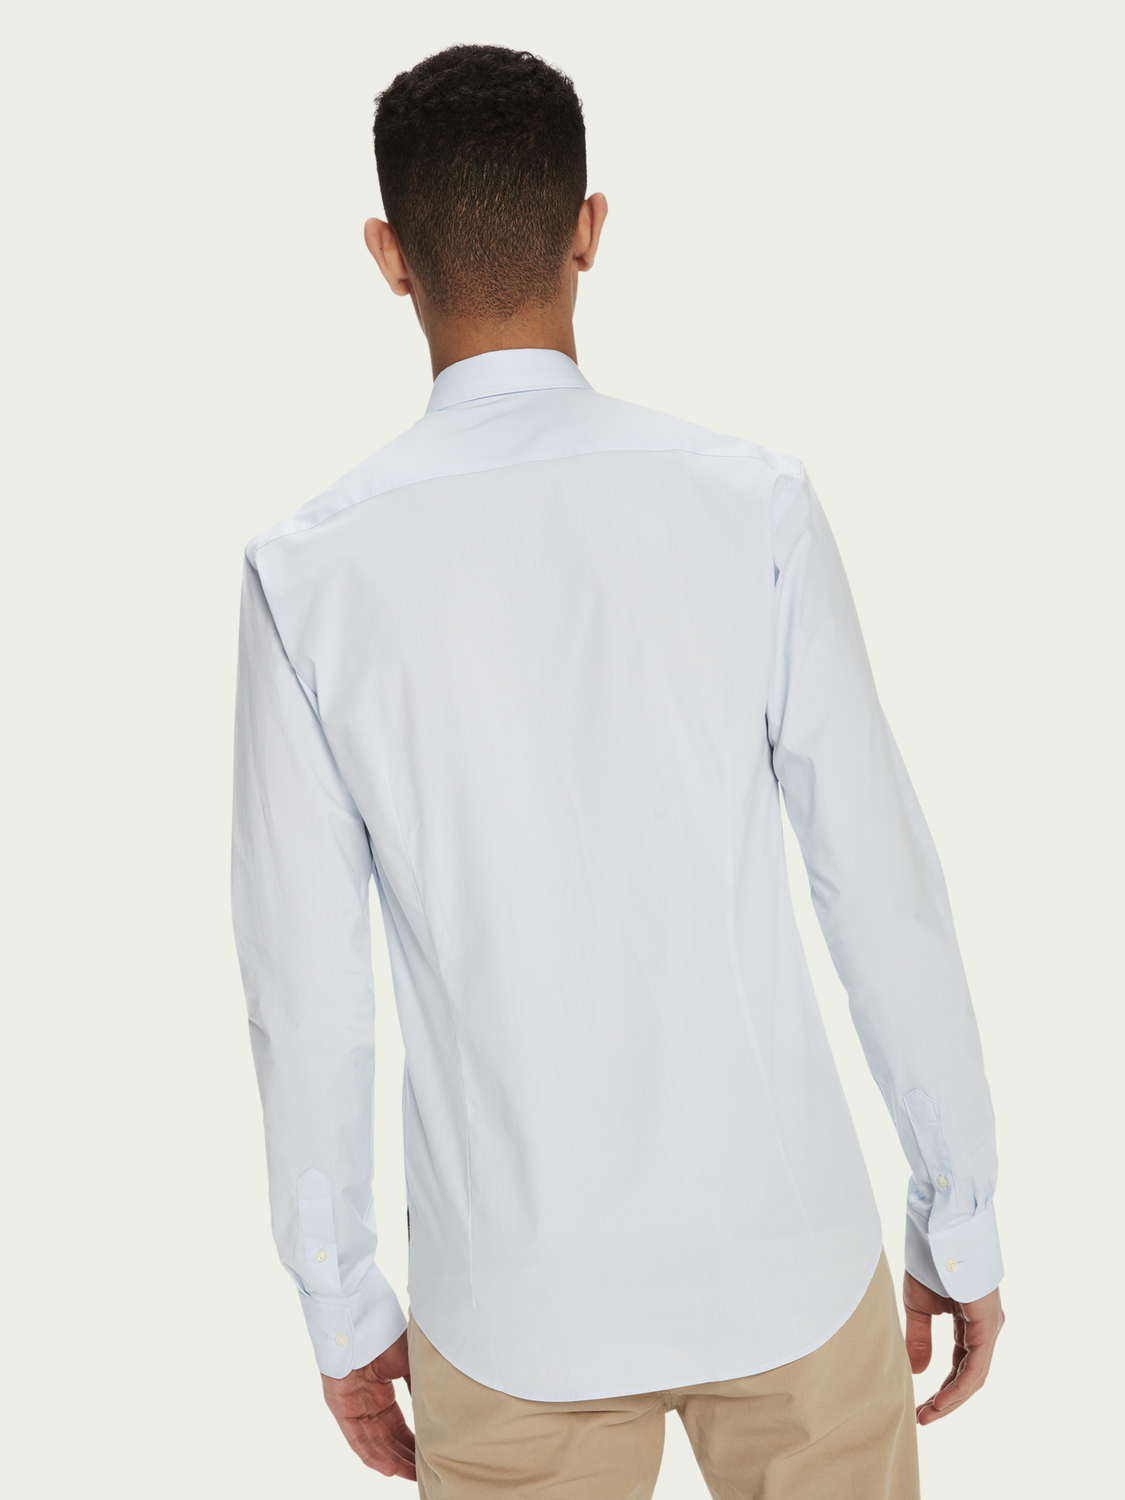 Herren Klassisches Stretch-Shirt | Slim Fit